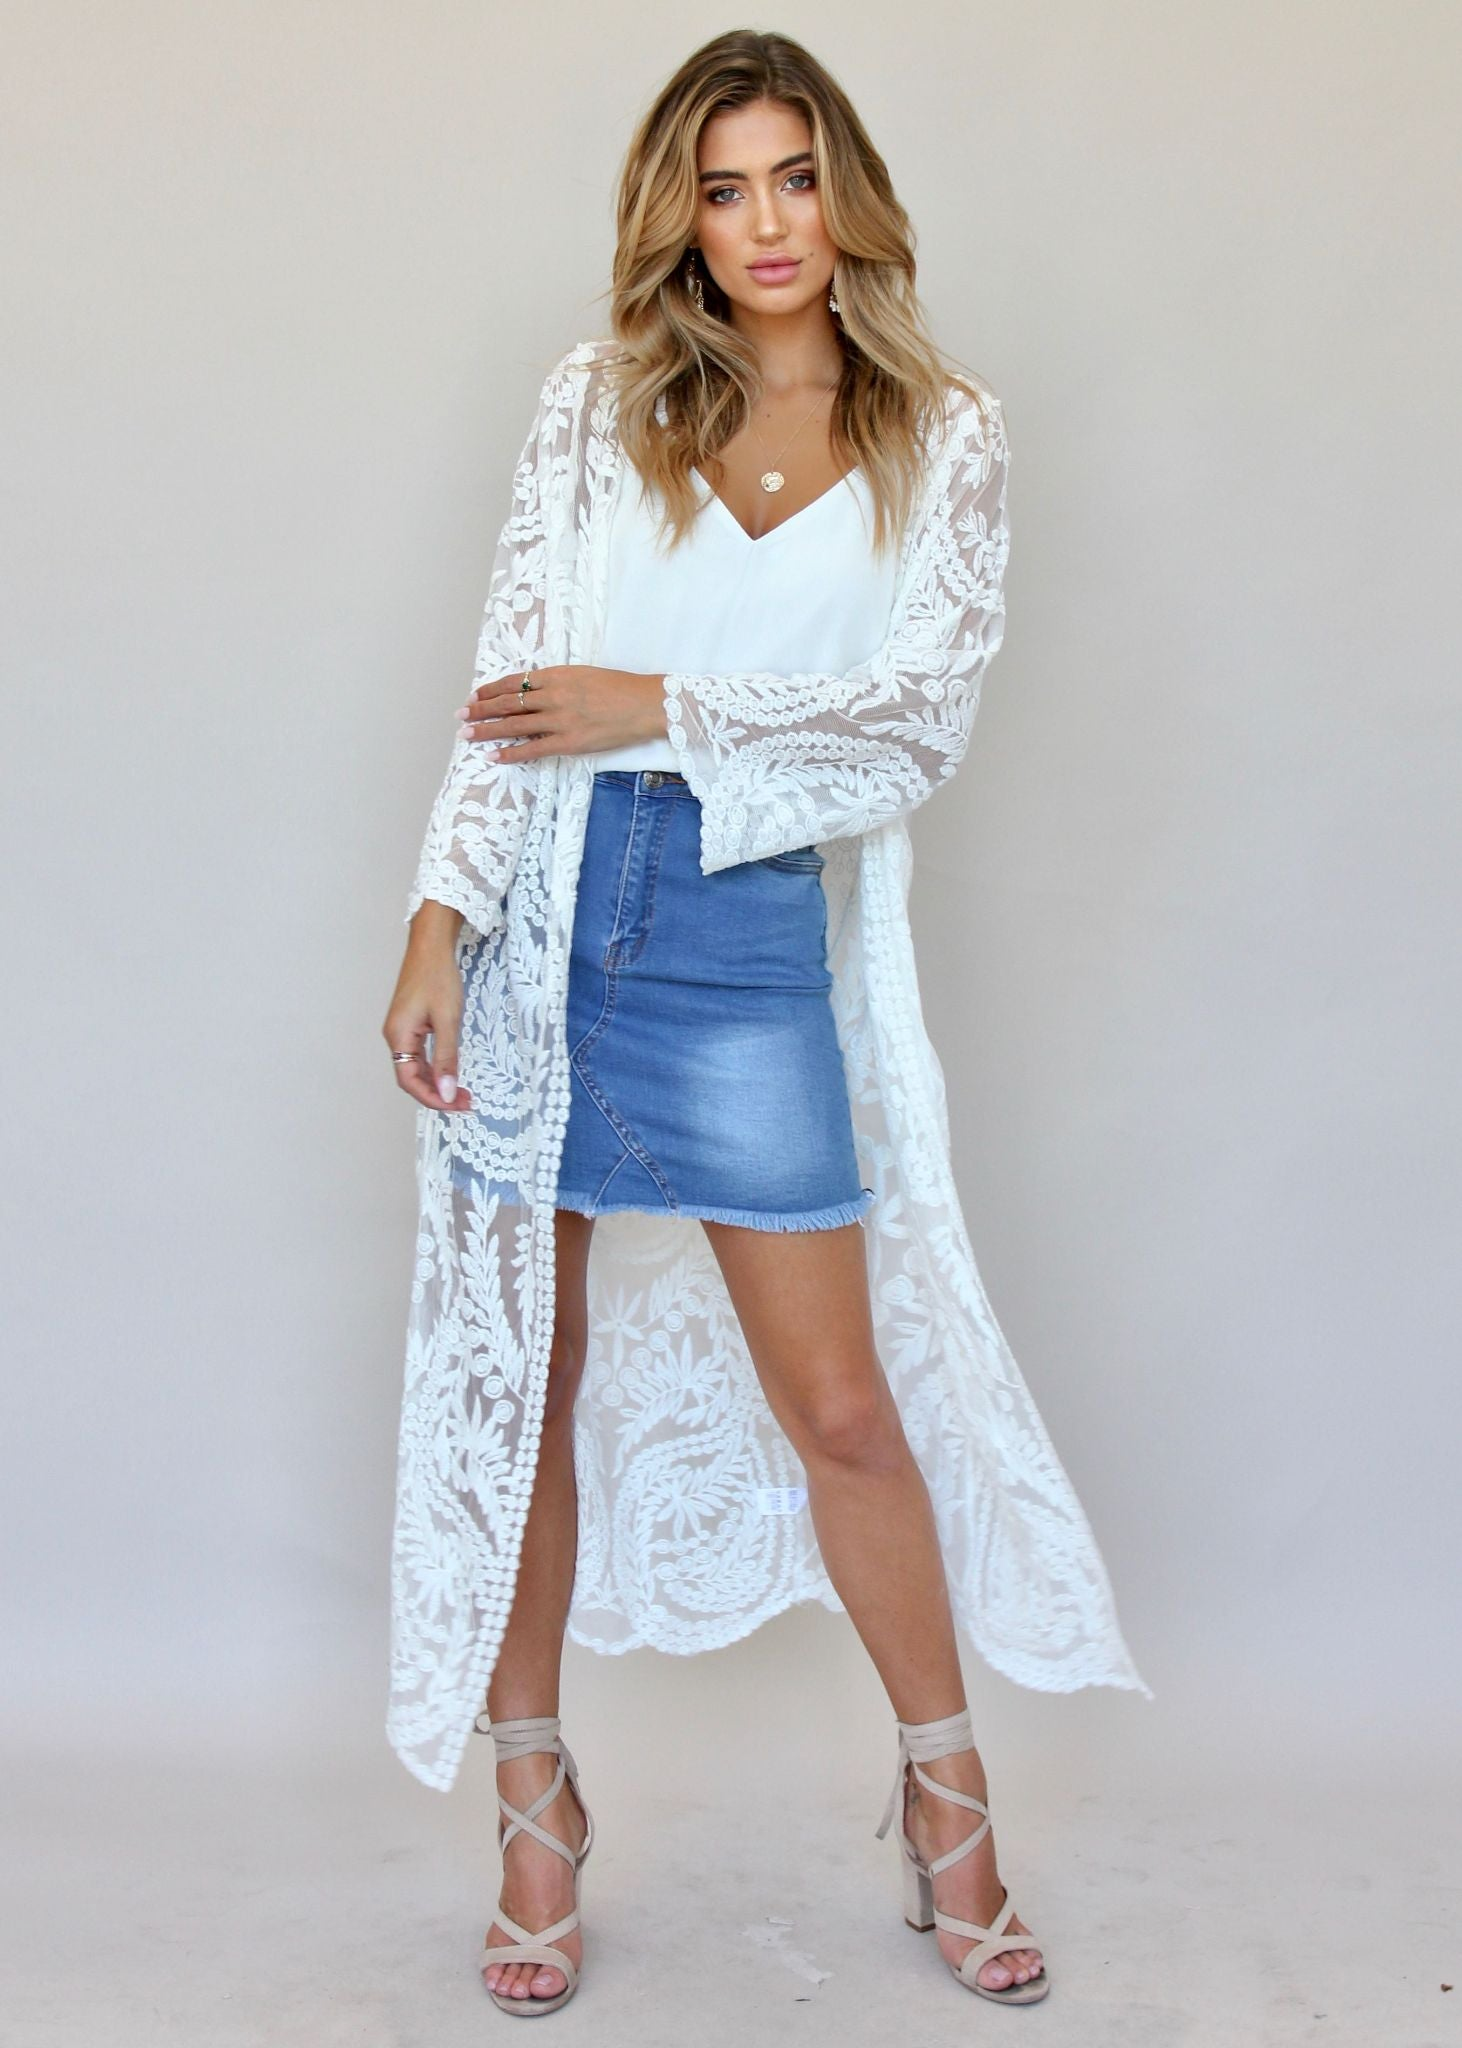 Always Loved Lace Cape - White